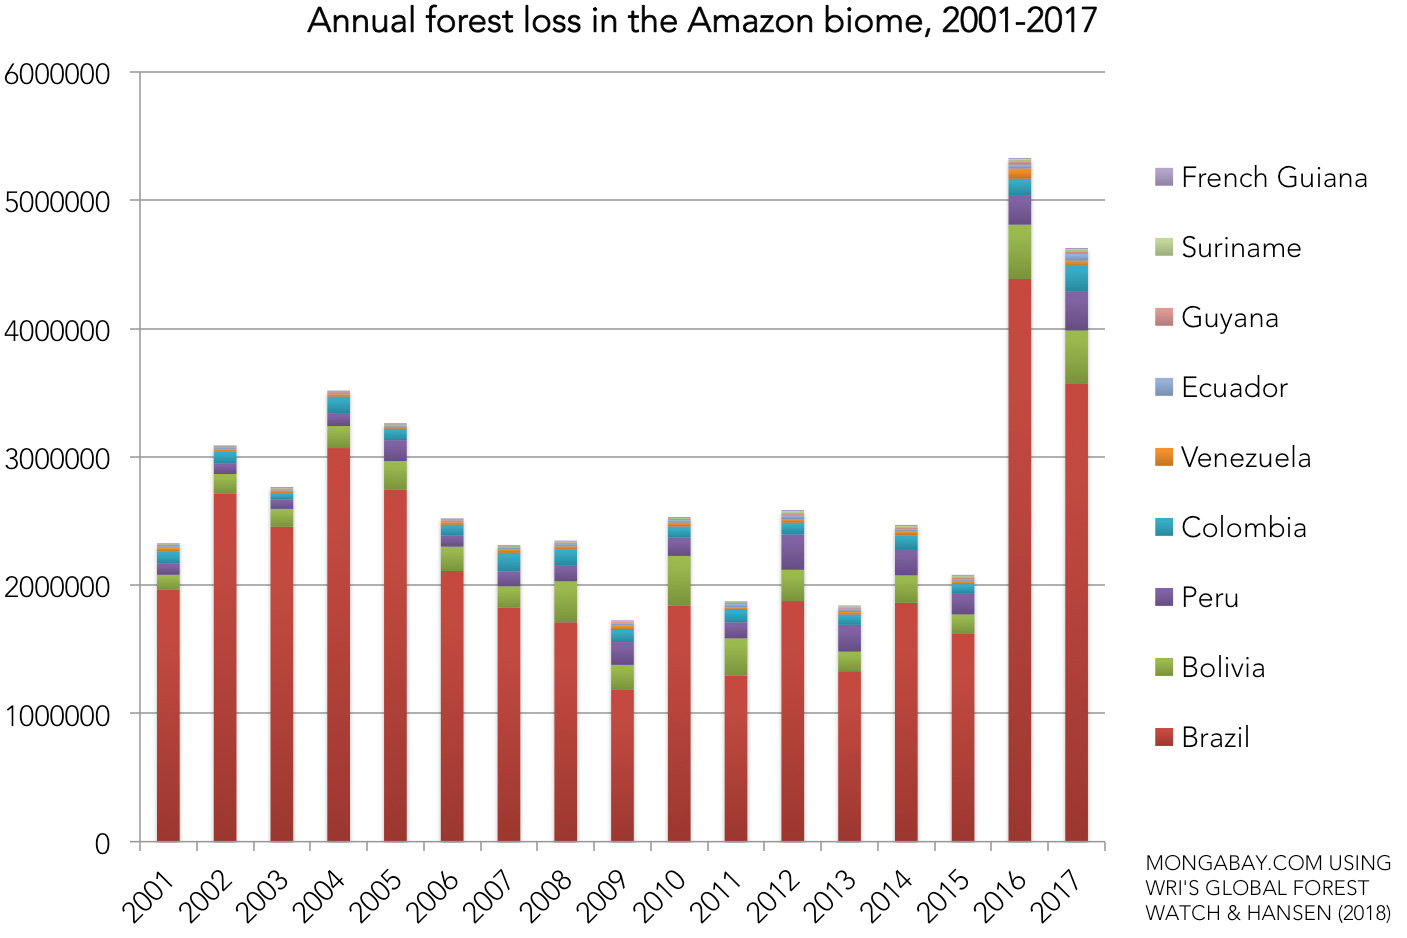 The world lost an area of tropical forest the size of Bangladesh in 2017 37